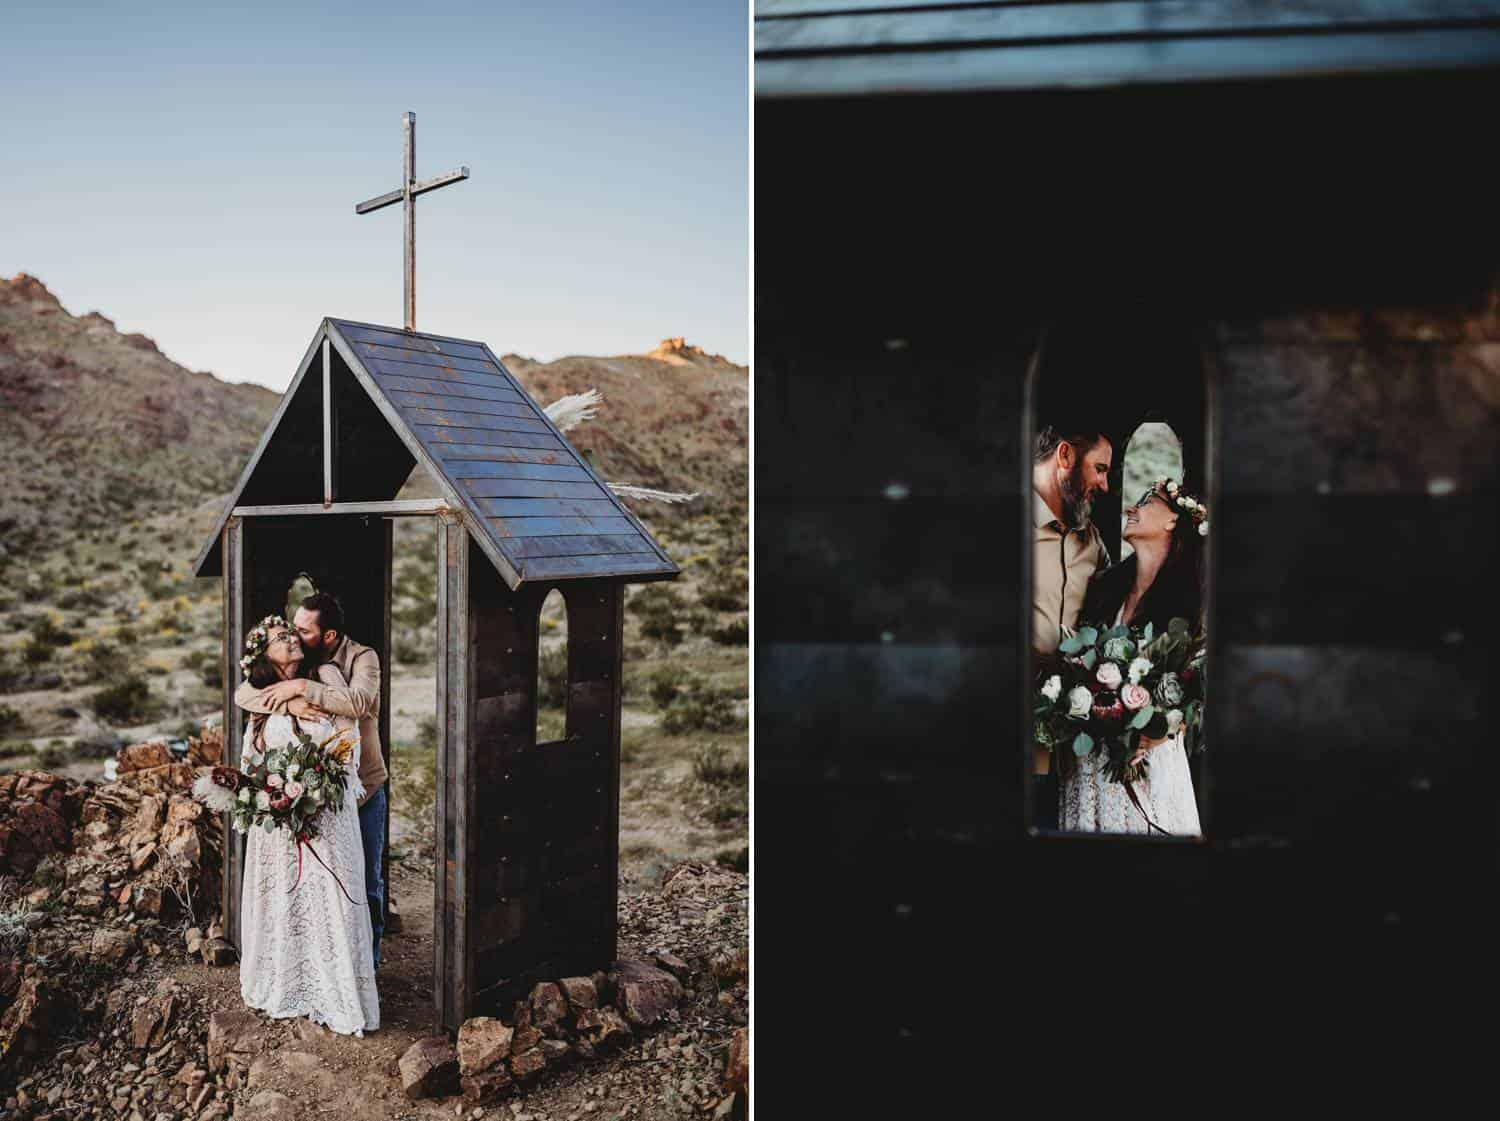 Two wedding photos are shown side by side. In the first one, a bride and groom cuddle close beneath the roof of a tiny wooden chapel in the mountains. In the second photo, the couple is photographed through the chapel's glassless window, where they look at each other lovingly.